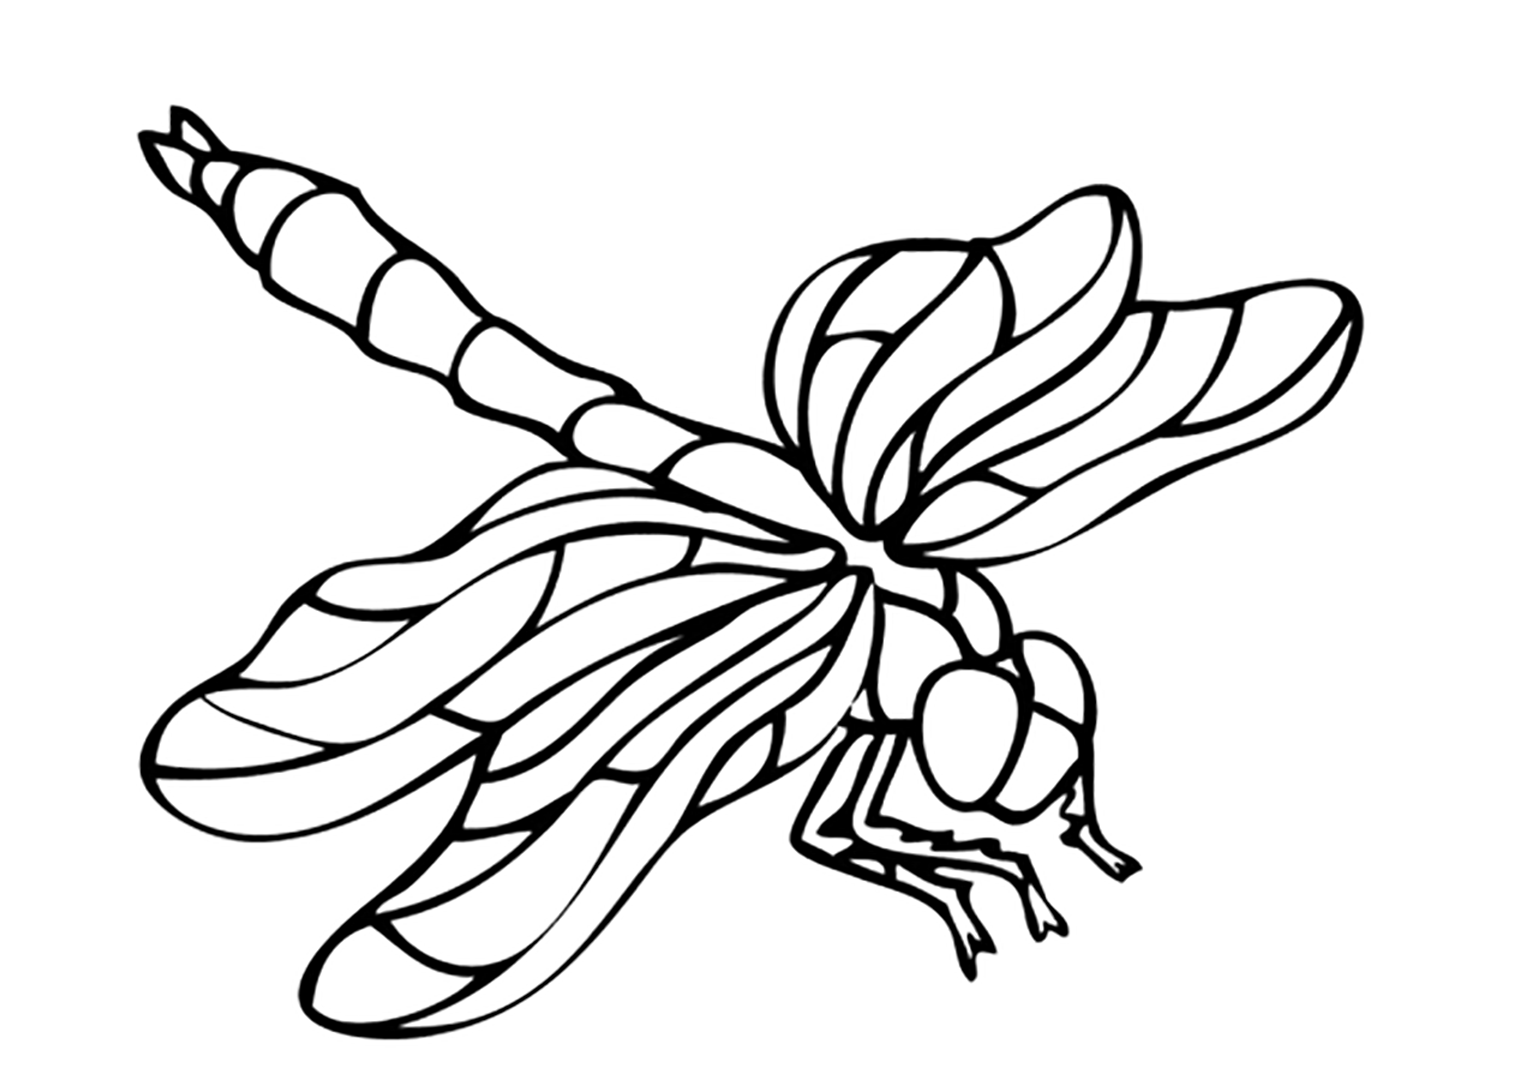 insect coloring sheets insects coloring pages coloring insect sheets